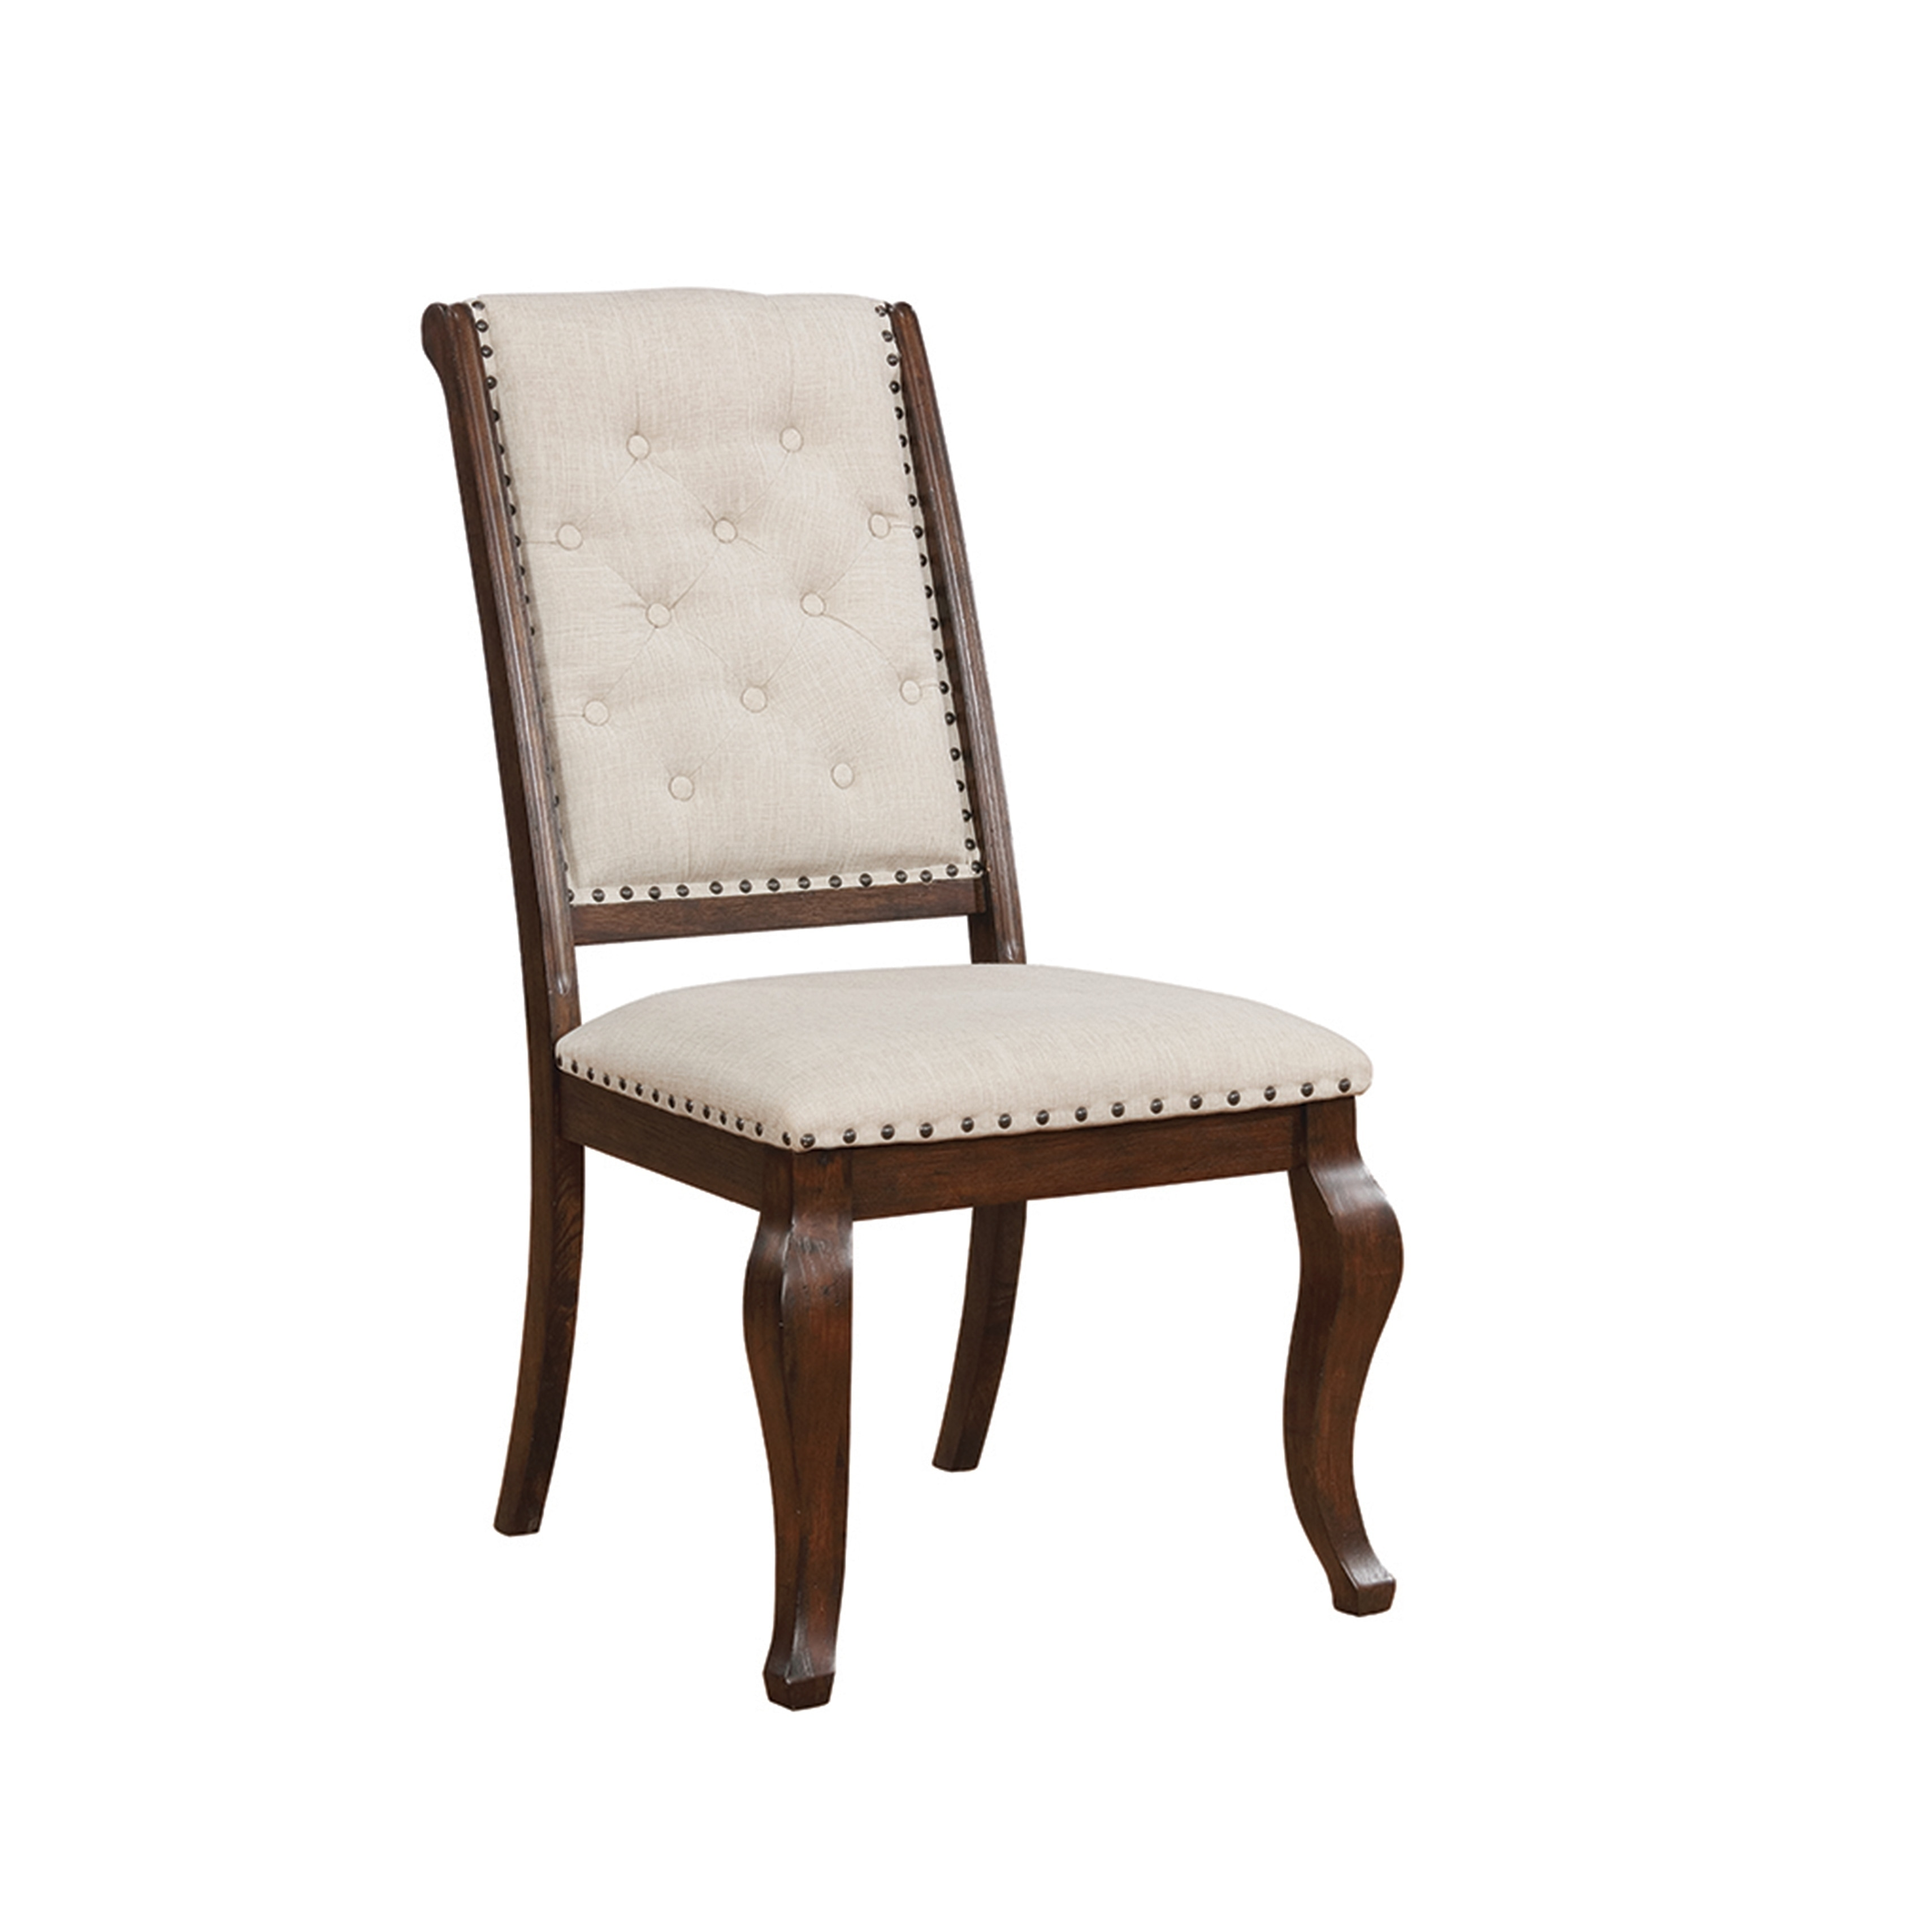 Shop Jarvis Traditional Tufted Dining Chairs (Set of 2) - On Sale - Free Shipping Today - Overstock - 27220860  sc 1 st  Overstock.com & Shop Jarvis Traditional Tufted Dining Chairs (Set of 2) - On Sale ...